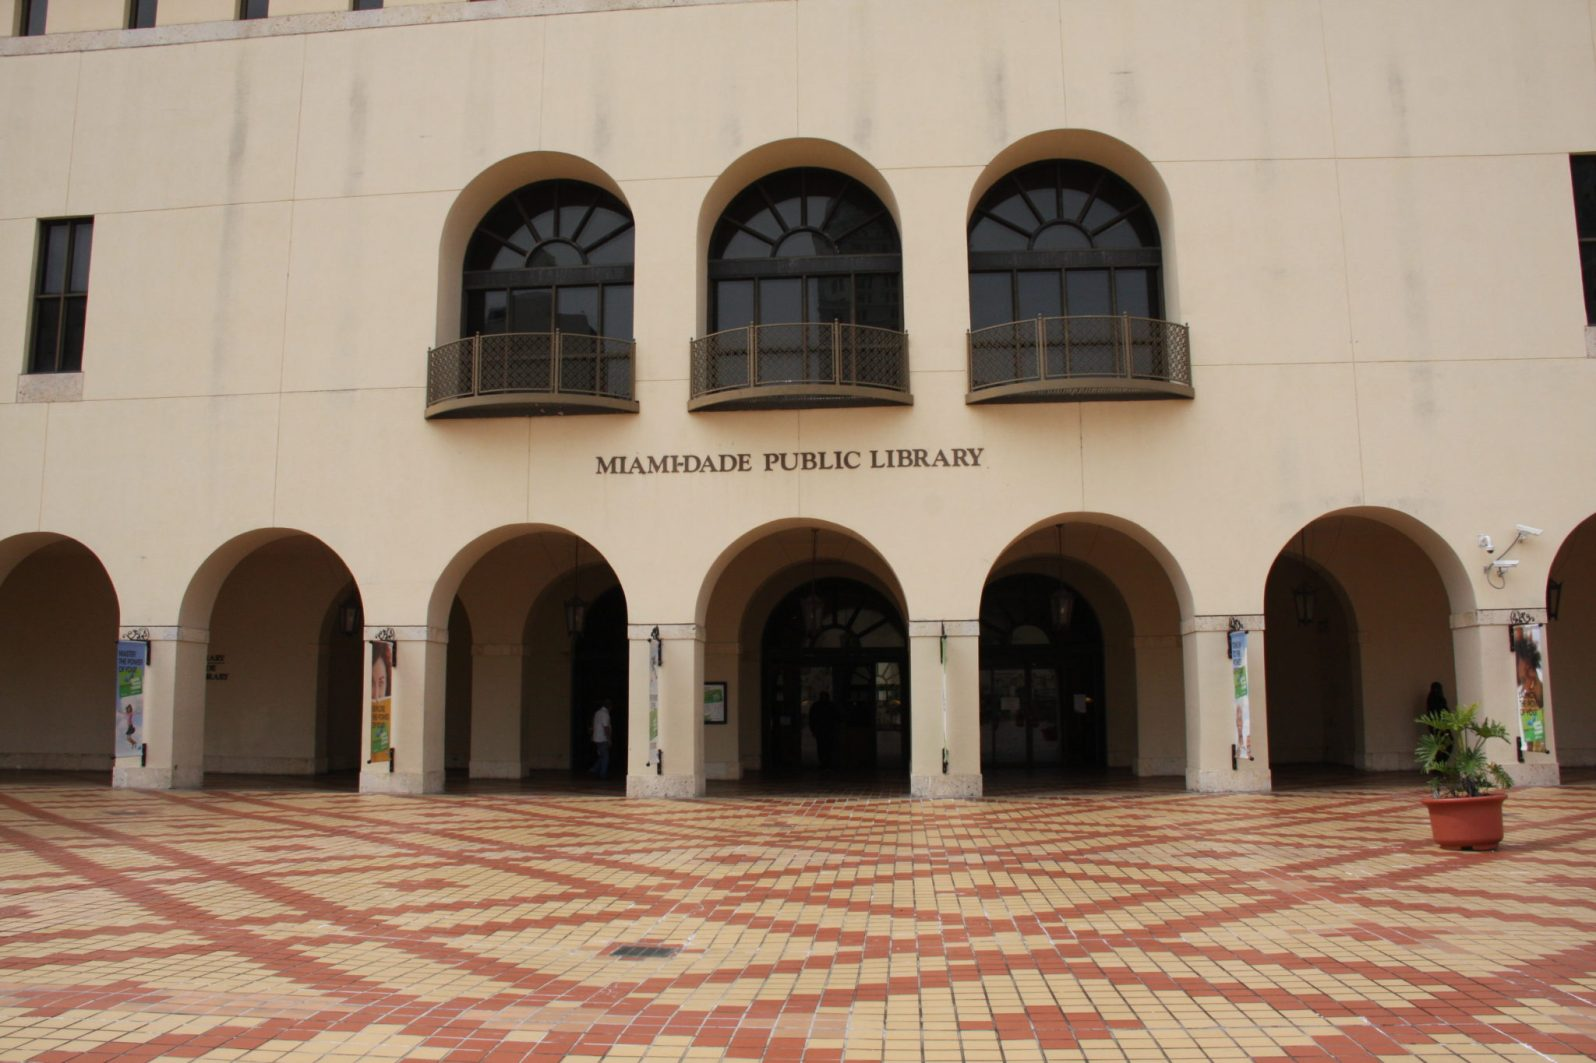 The Downtown Miami branch of Miami-Dade Public Library.